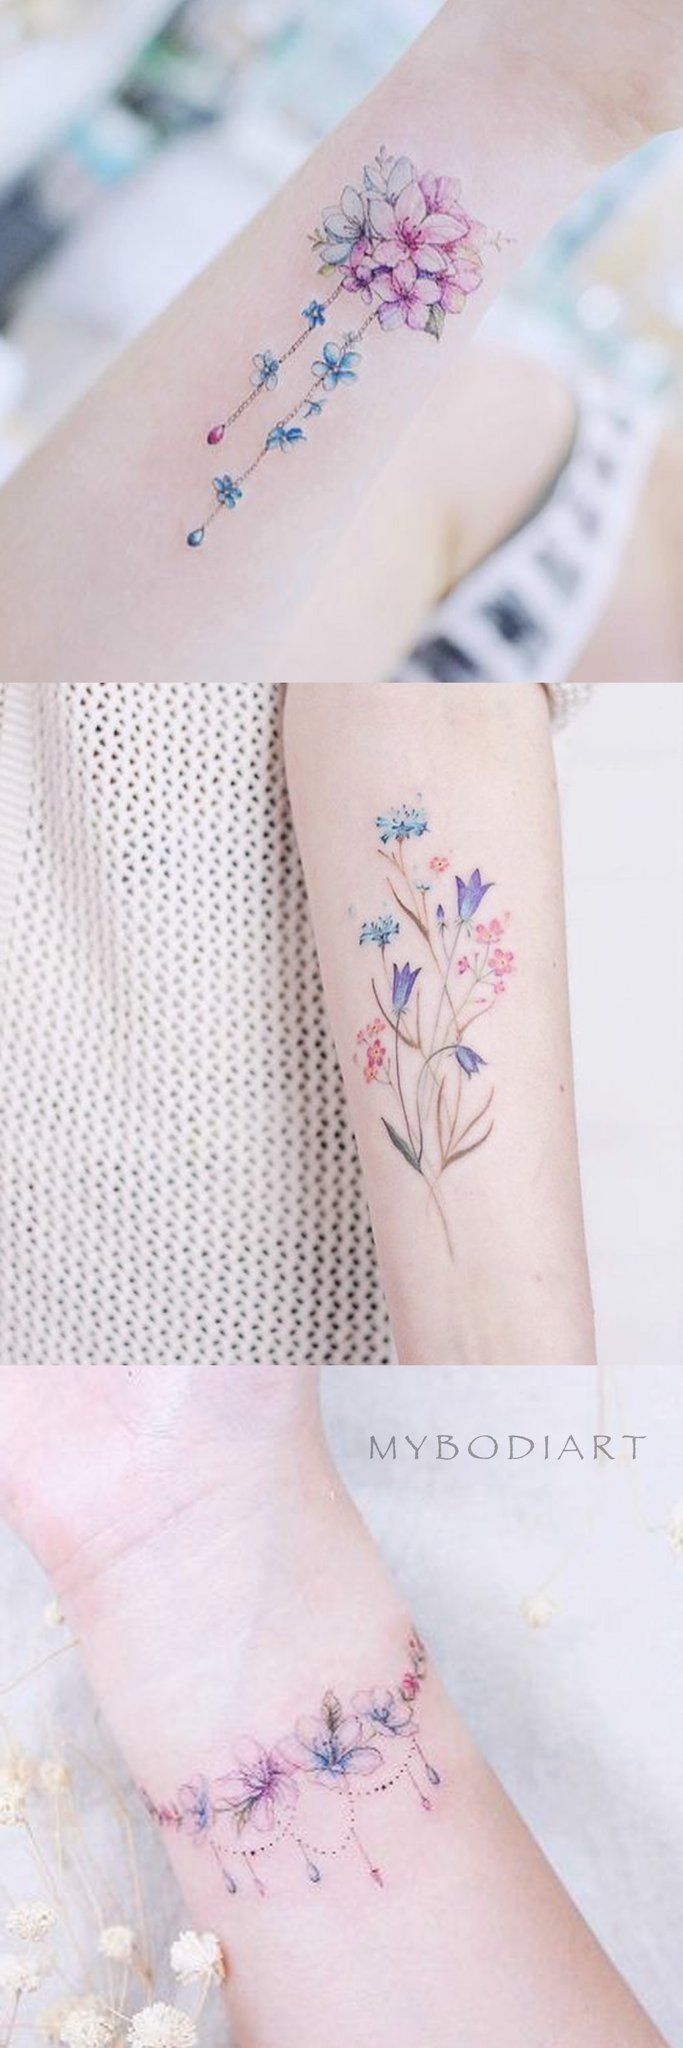 Marketplace Tattoo Butterfly and Flower #13854 | CreateMyTattoo.com